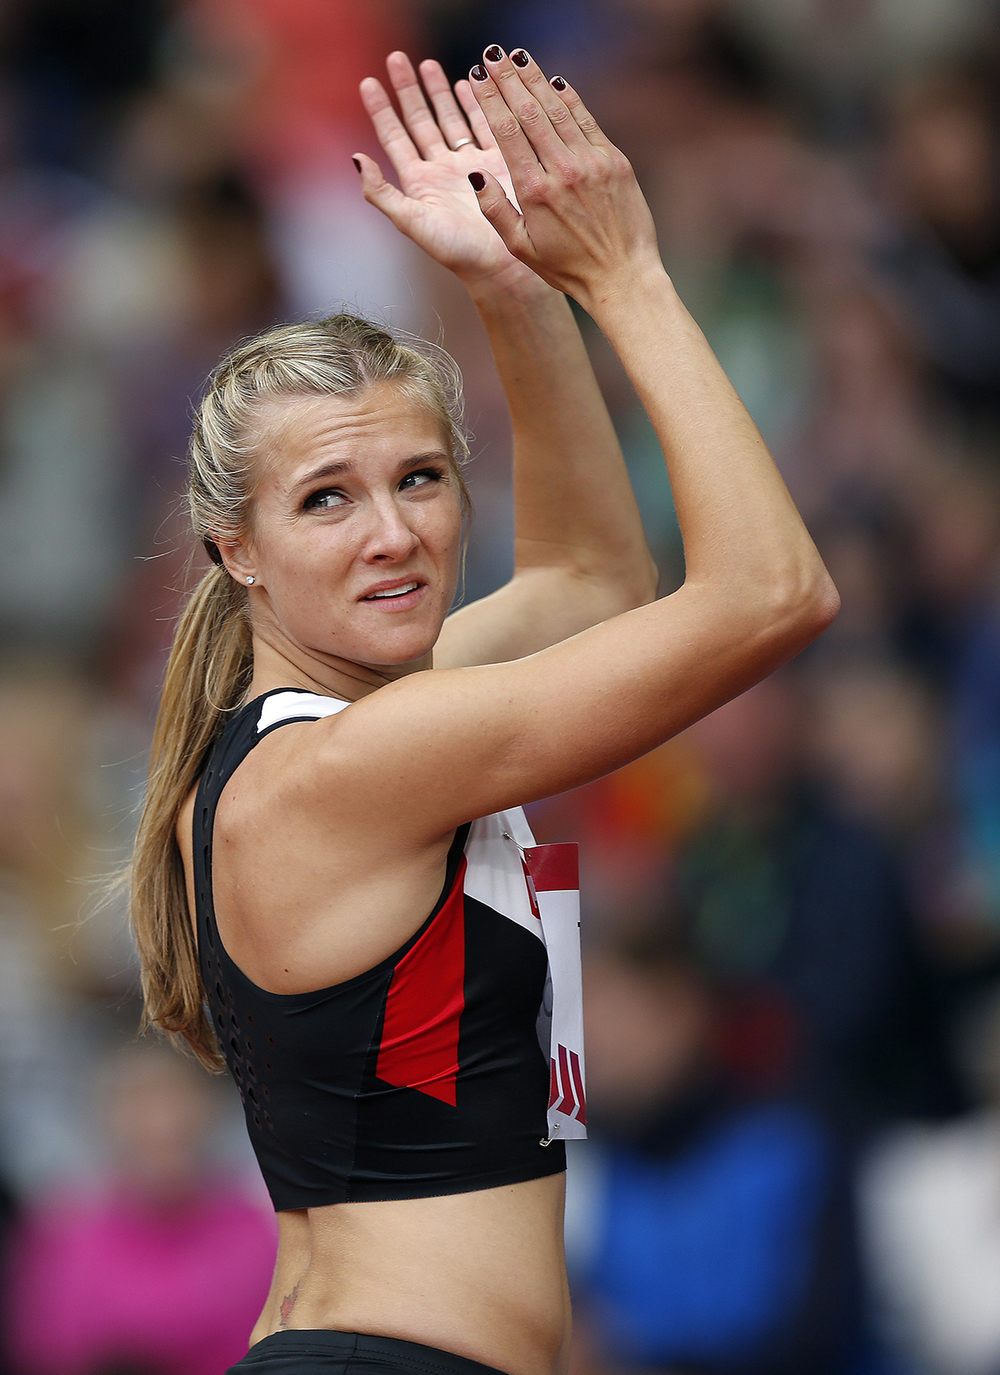 Canada's Brianne Theisen-Eaton applauds during the Women's Heptathlon jumping competition at Hampden Park Stadium during the Commonwealth Games 2014 in Glasgow, Scotland, Tuesday July 29, 2014. (AP Photo/Frank Augstein)